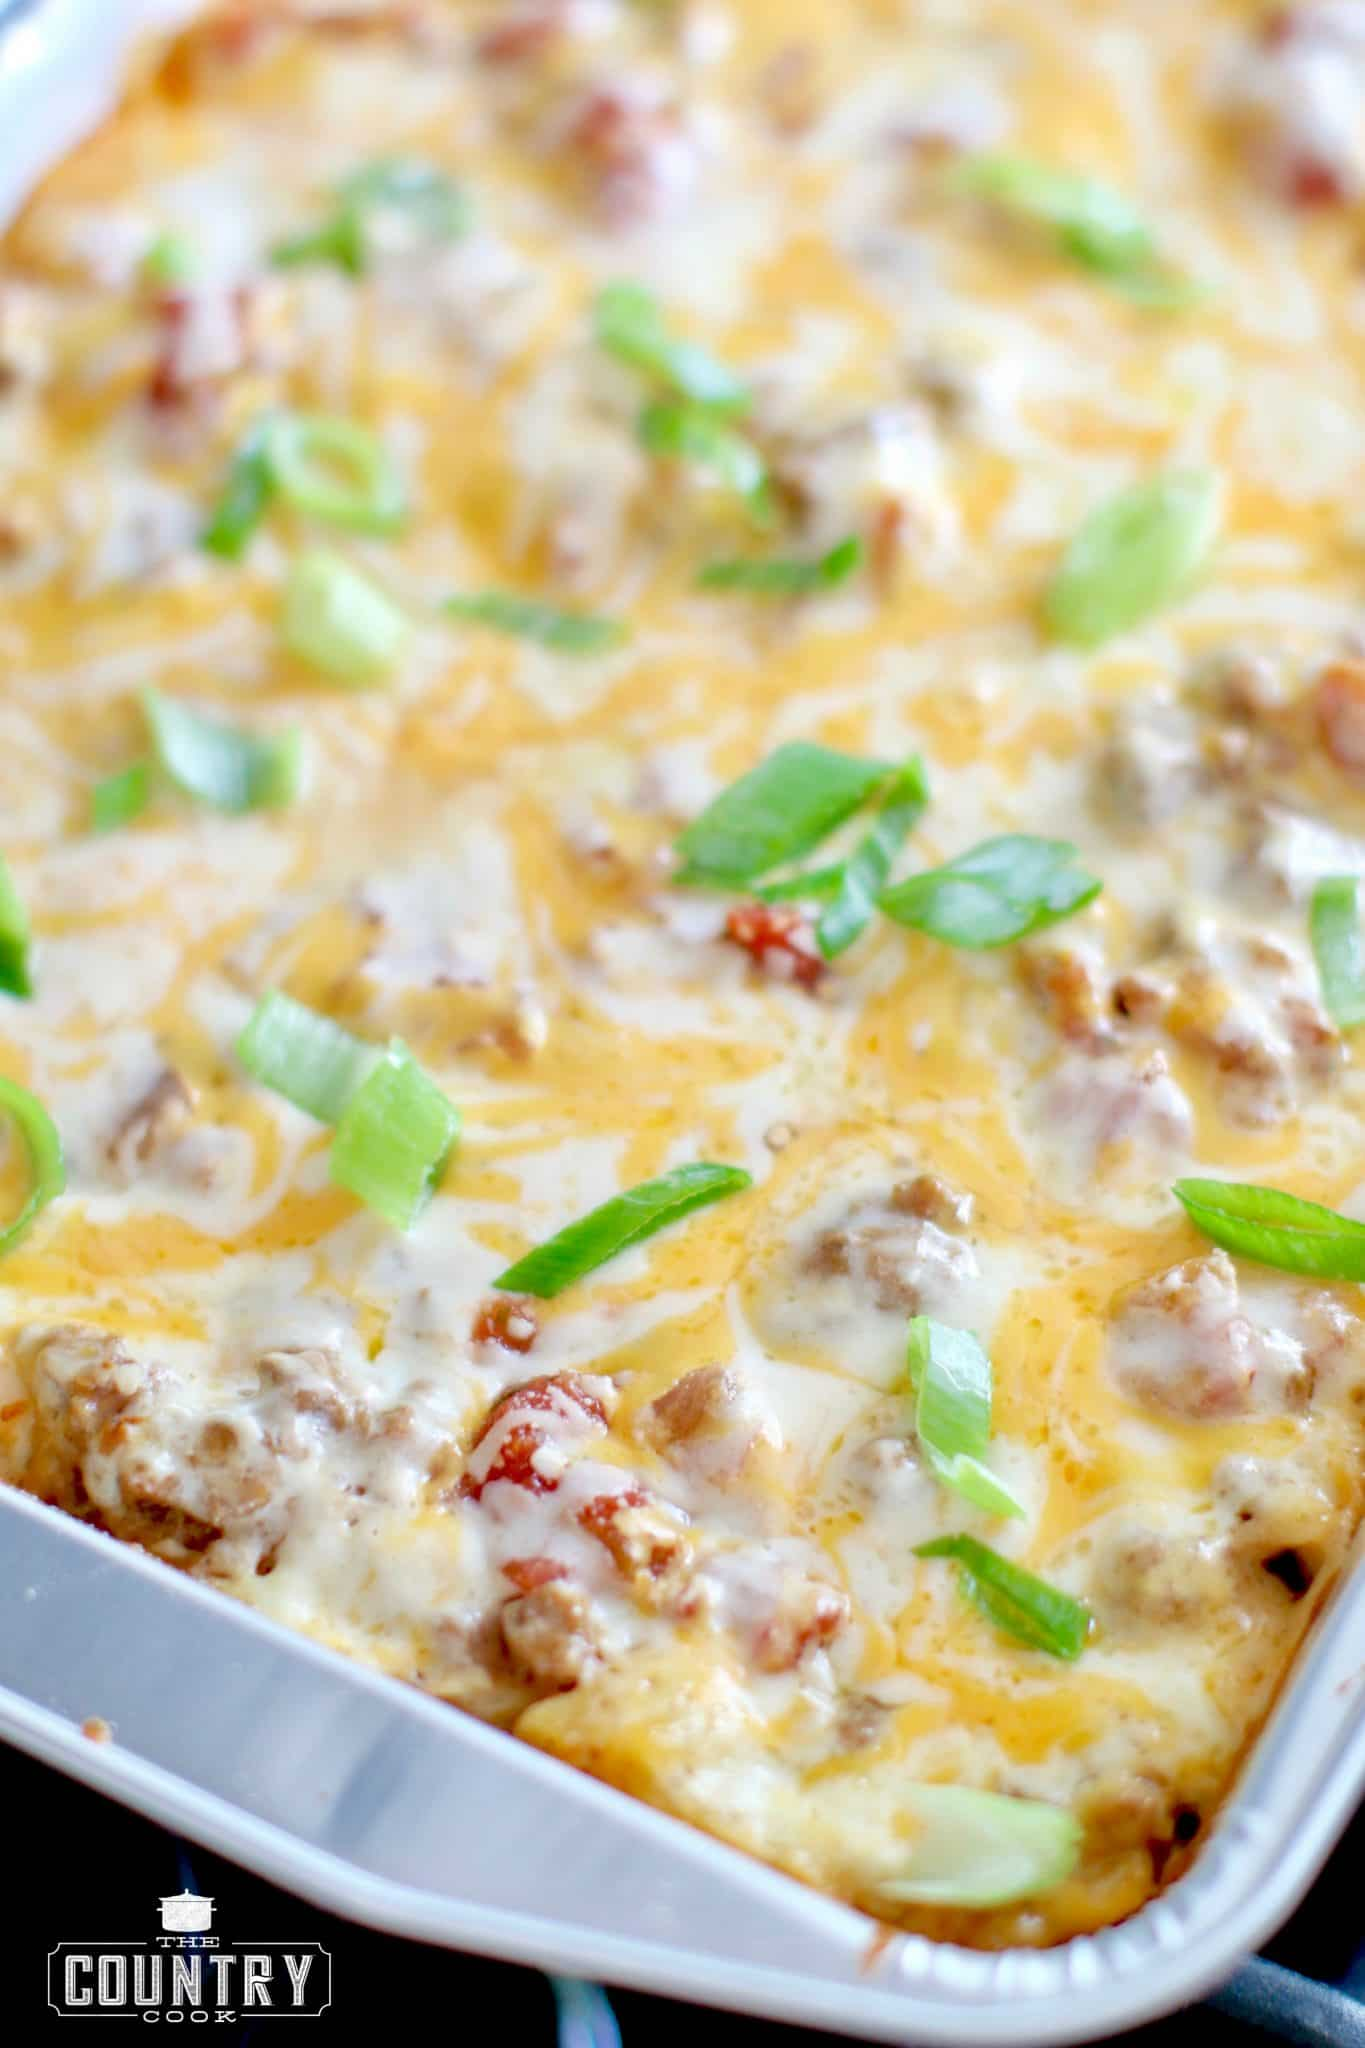 fulled baked Mexican lasagna with melted cheese and topped with sliced green onions